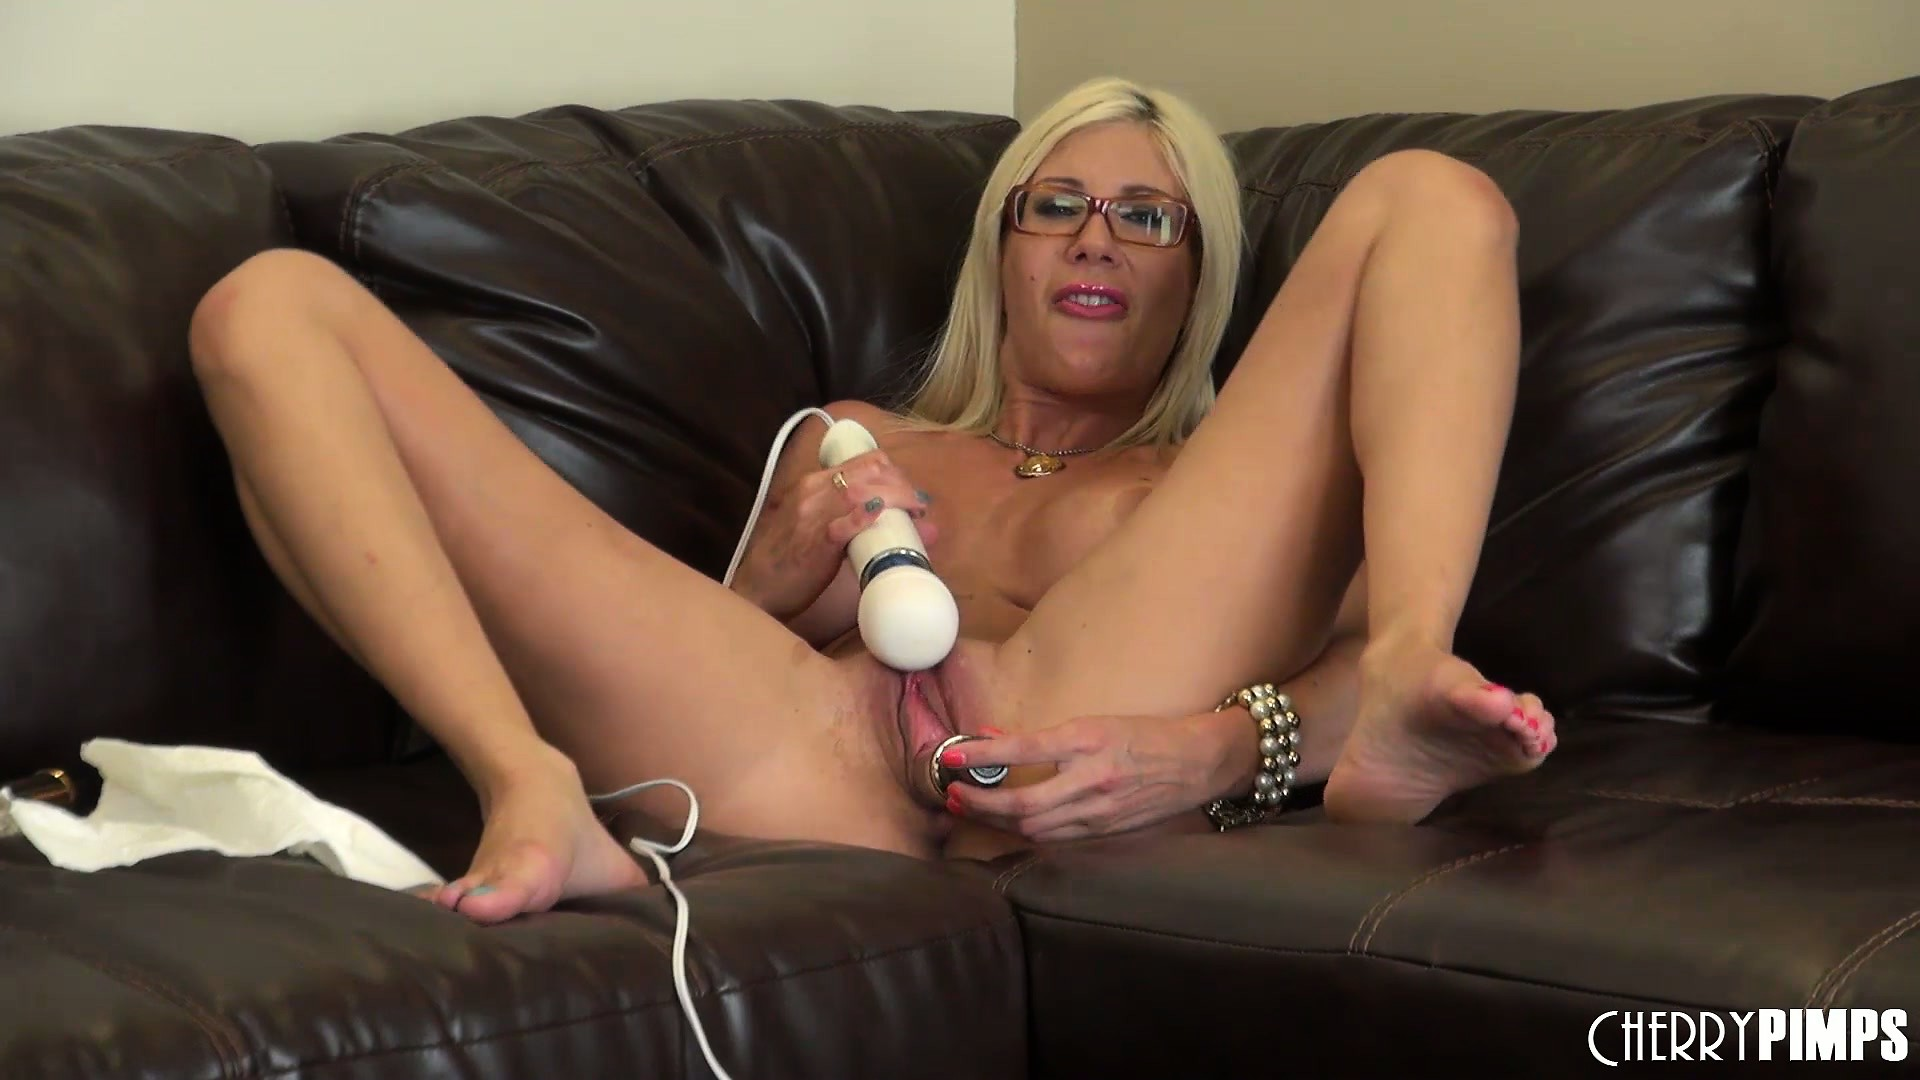 Porn Tube of The Blonde Bombshell Has A Passion For Sex Toys And Isn't Afraid To Show It